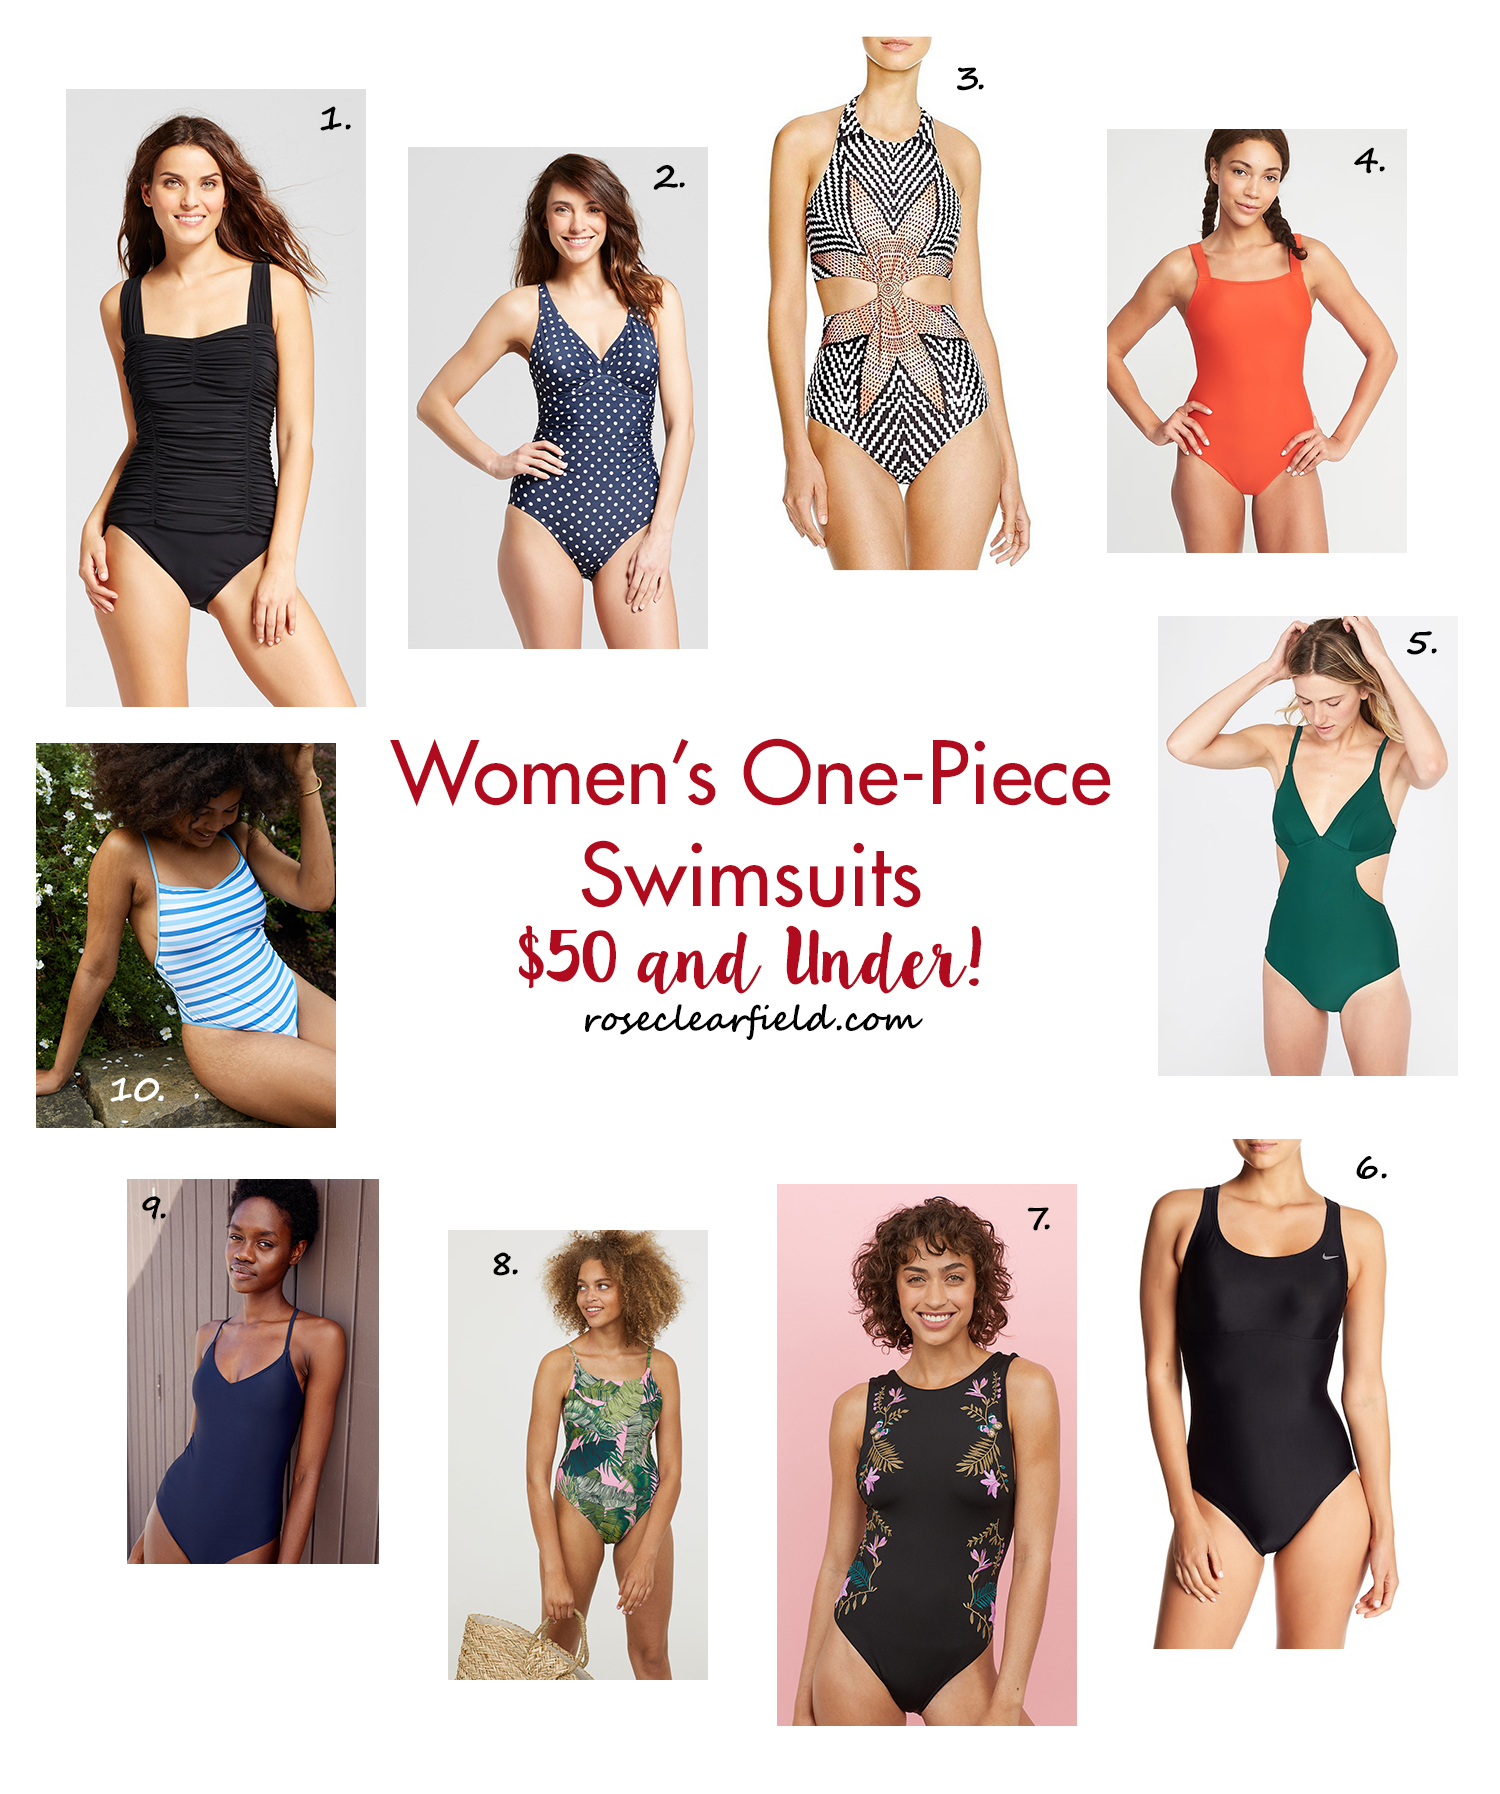 Women's One-Piece Swimsuits - $50 and Under! | https://www.roseclearfield.com